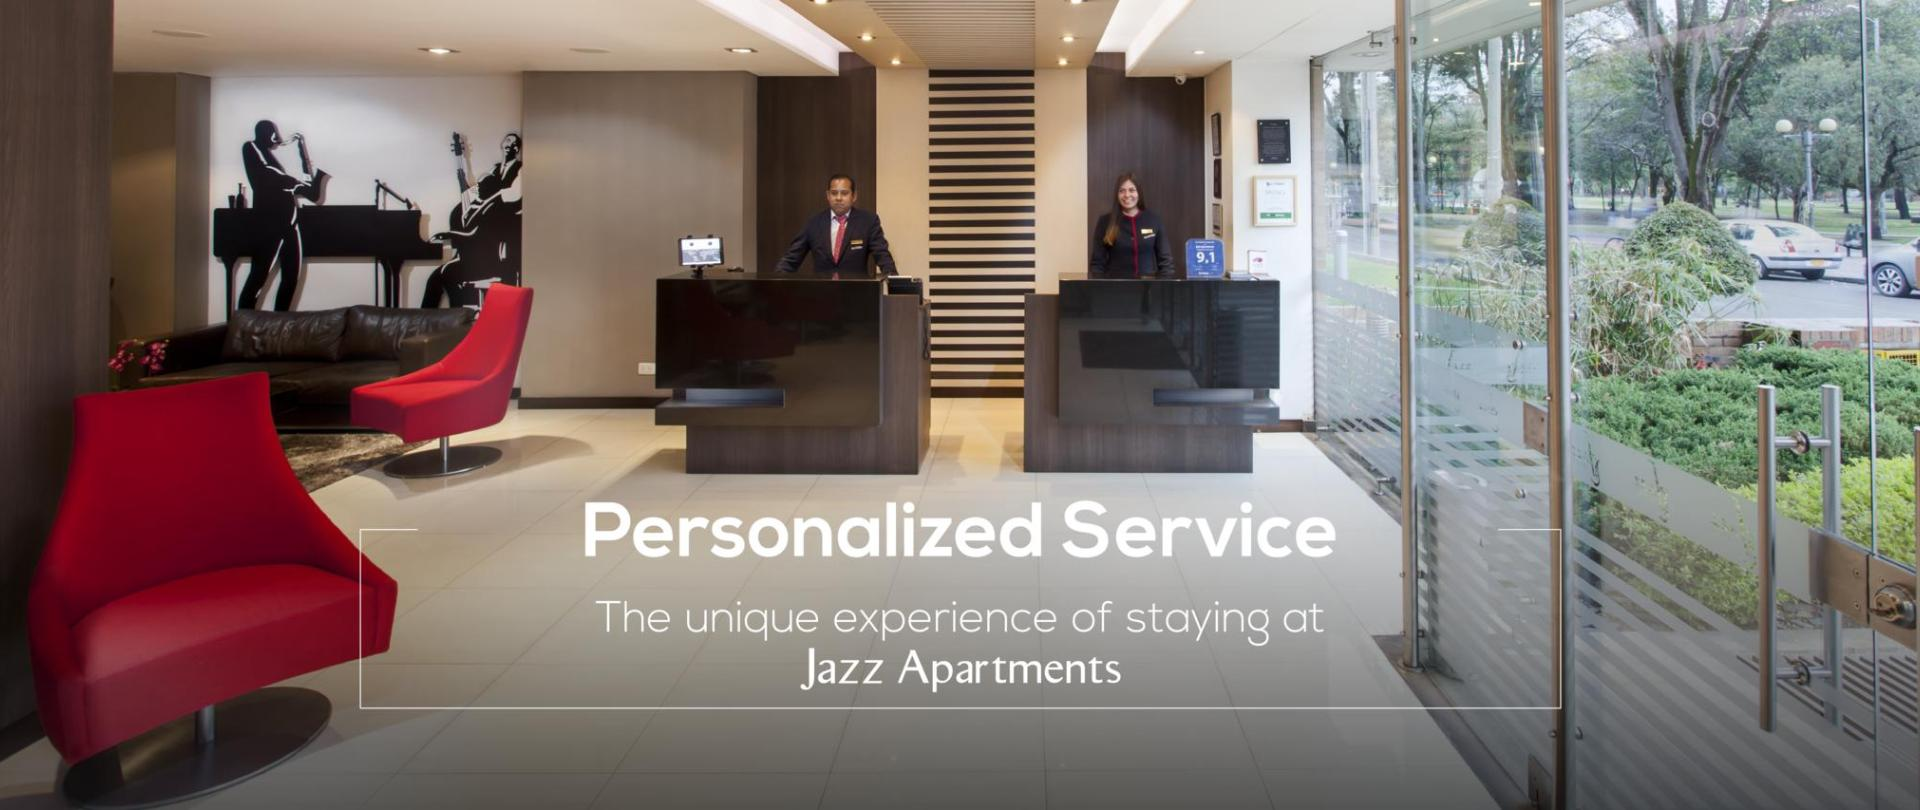 www-jazzapartments-com-service-custom-ingles.png